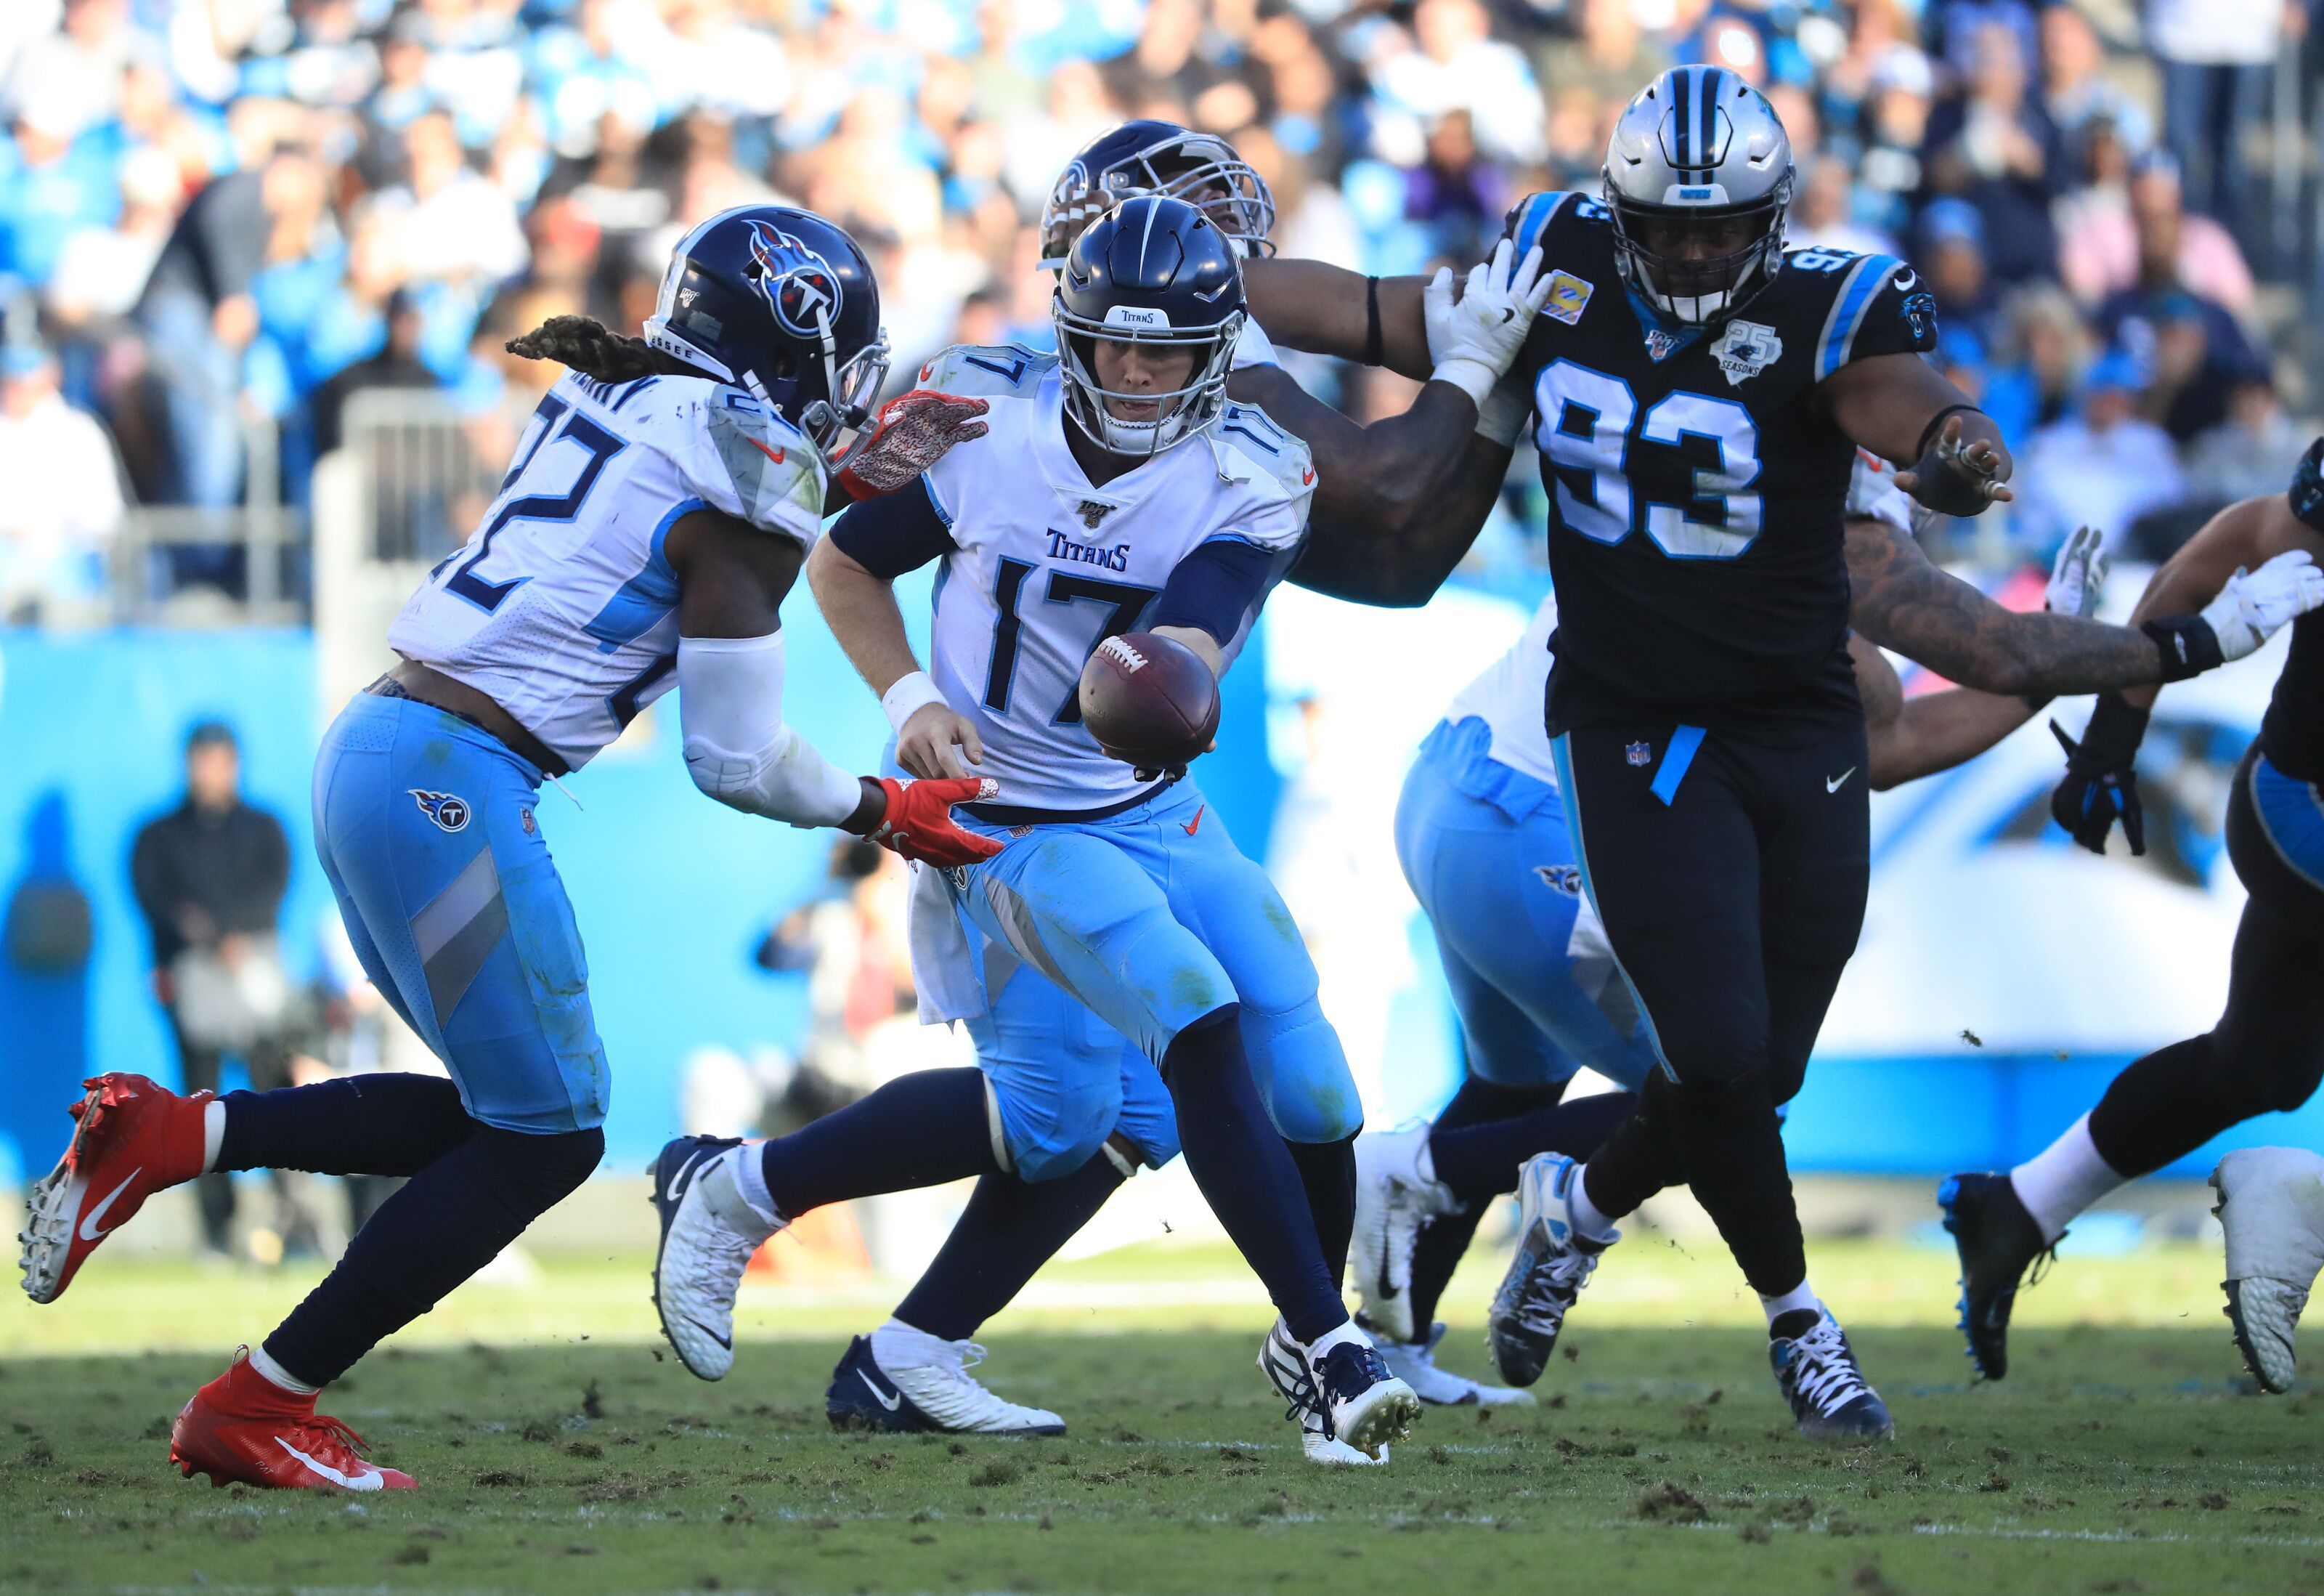 The most important part of the Tennessee Titans offense